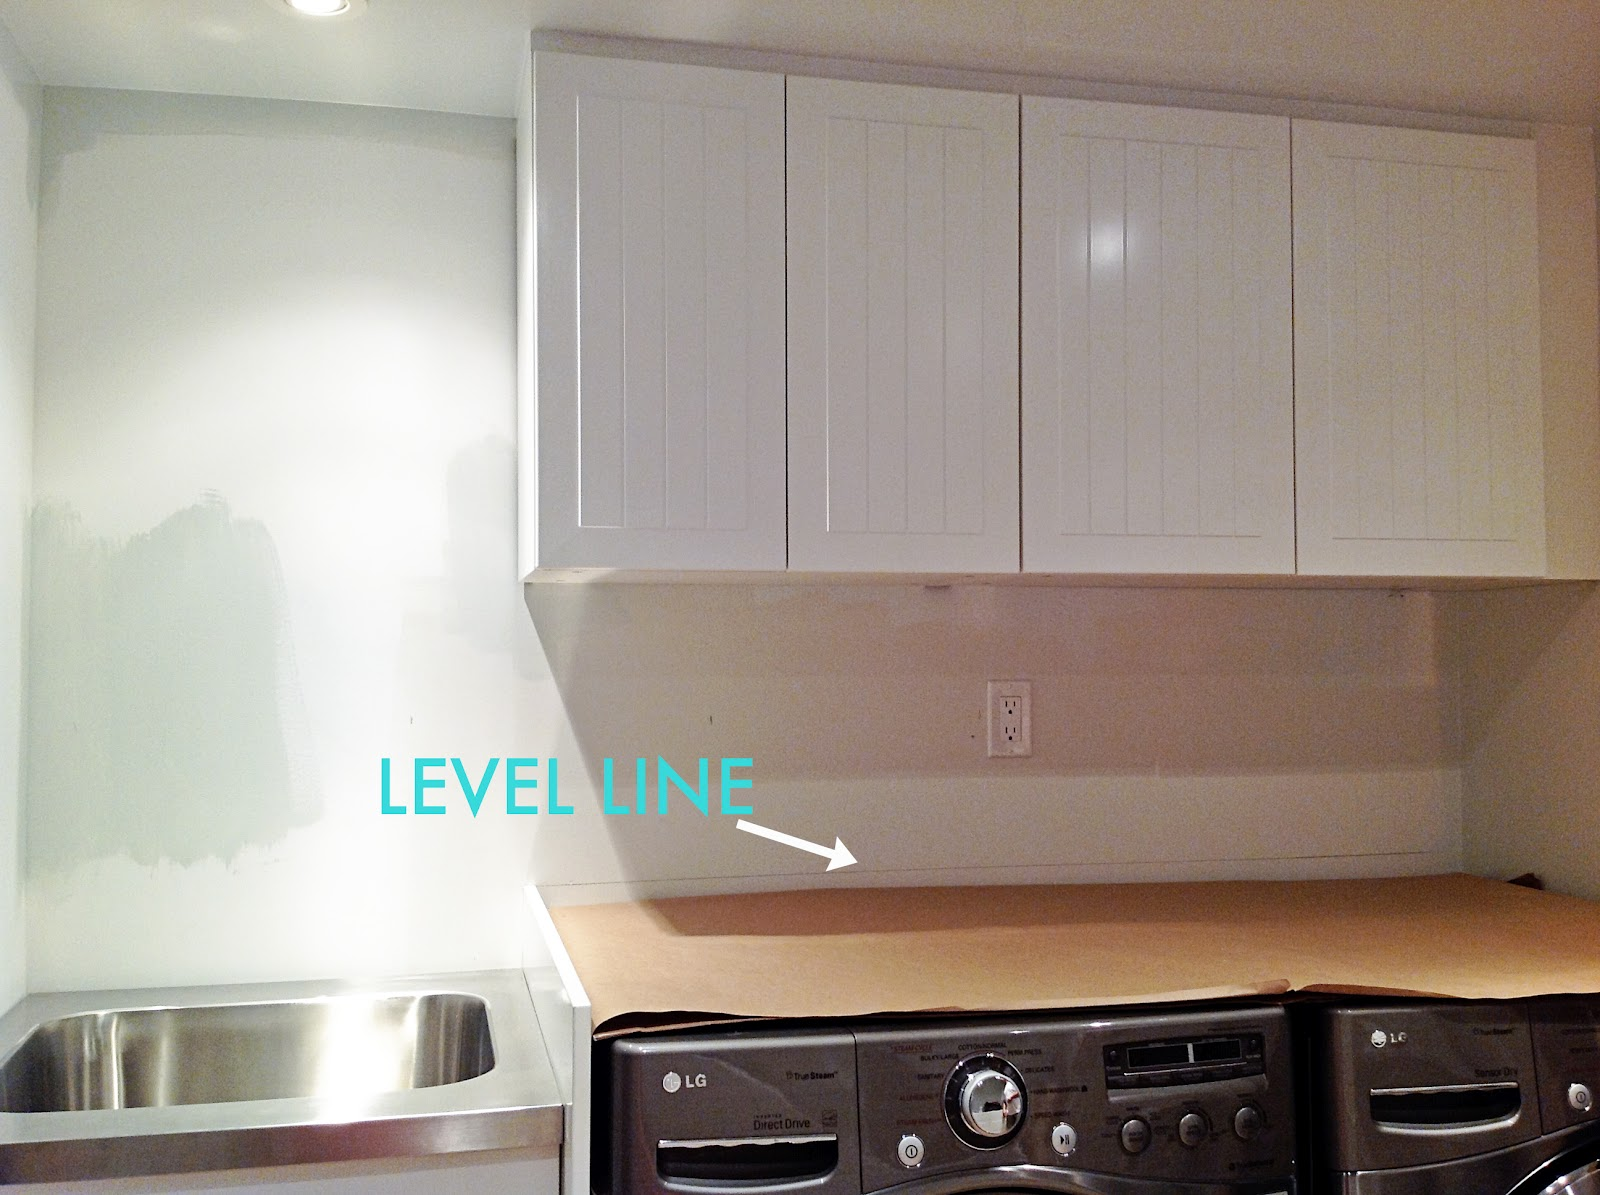 How To Install A Countertop Over A Washer And Dryer, DIY floating countertop in the laundry room, countertop cleat, counter over front load washer and dryer